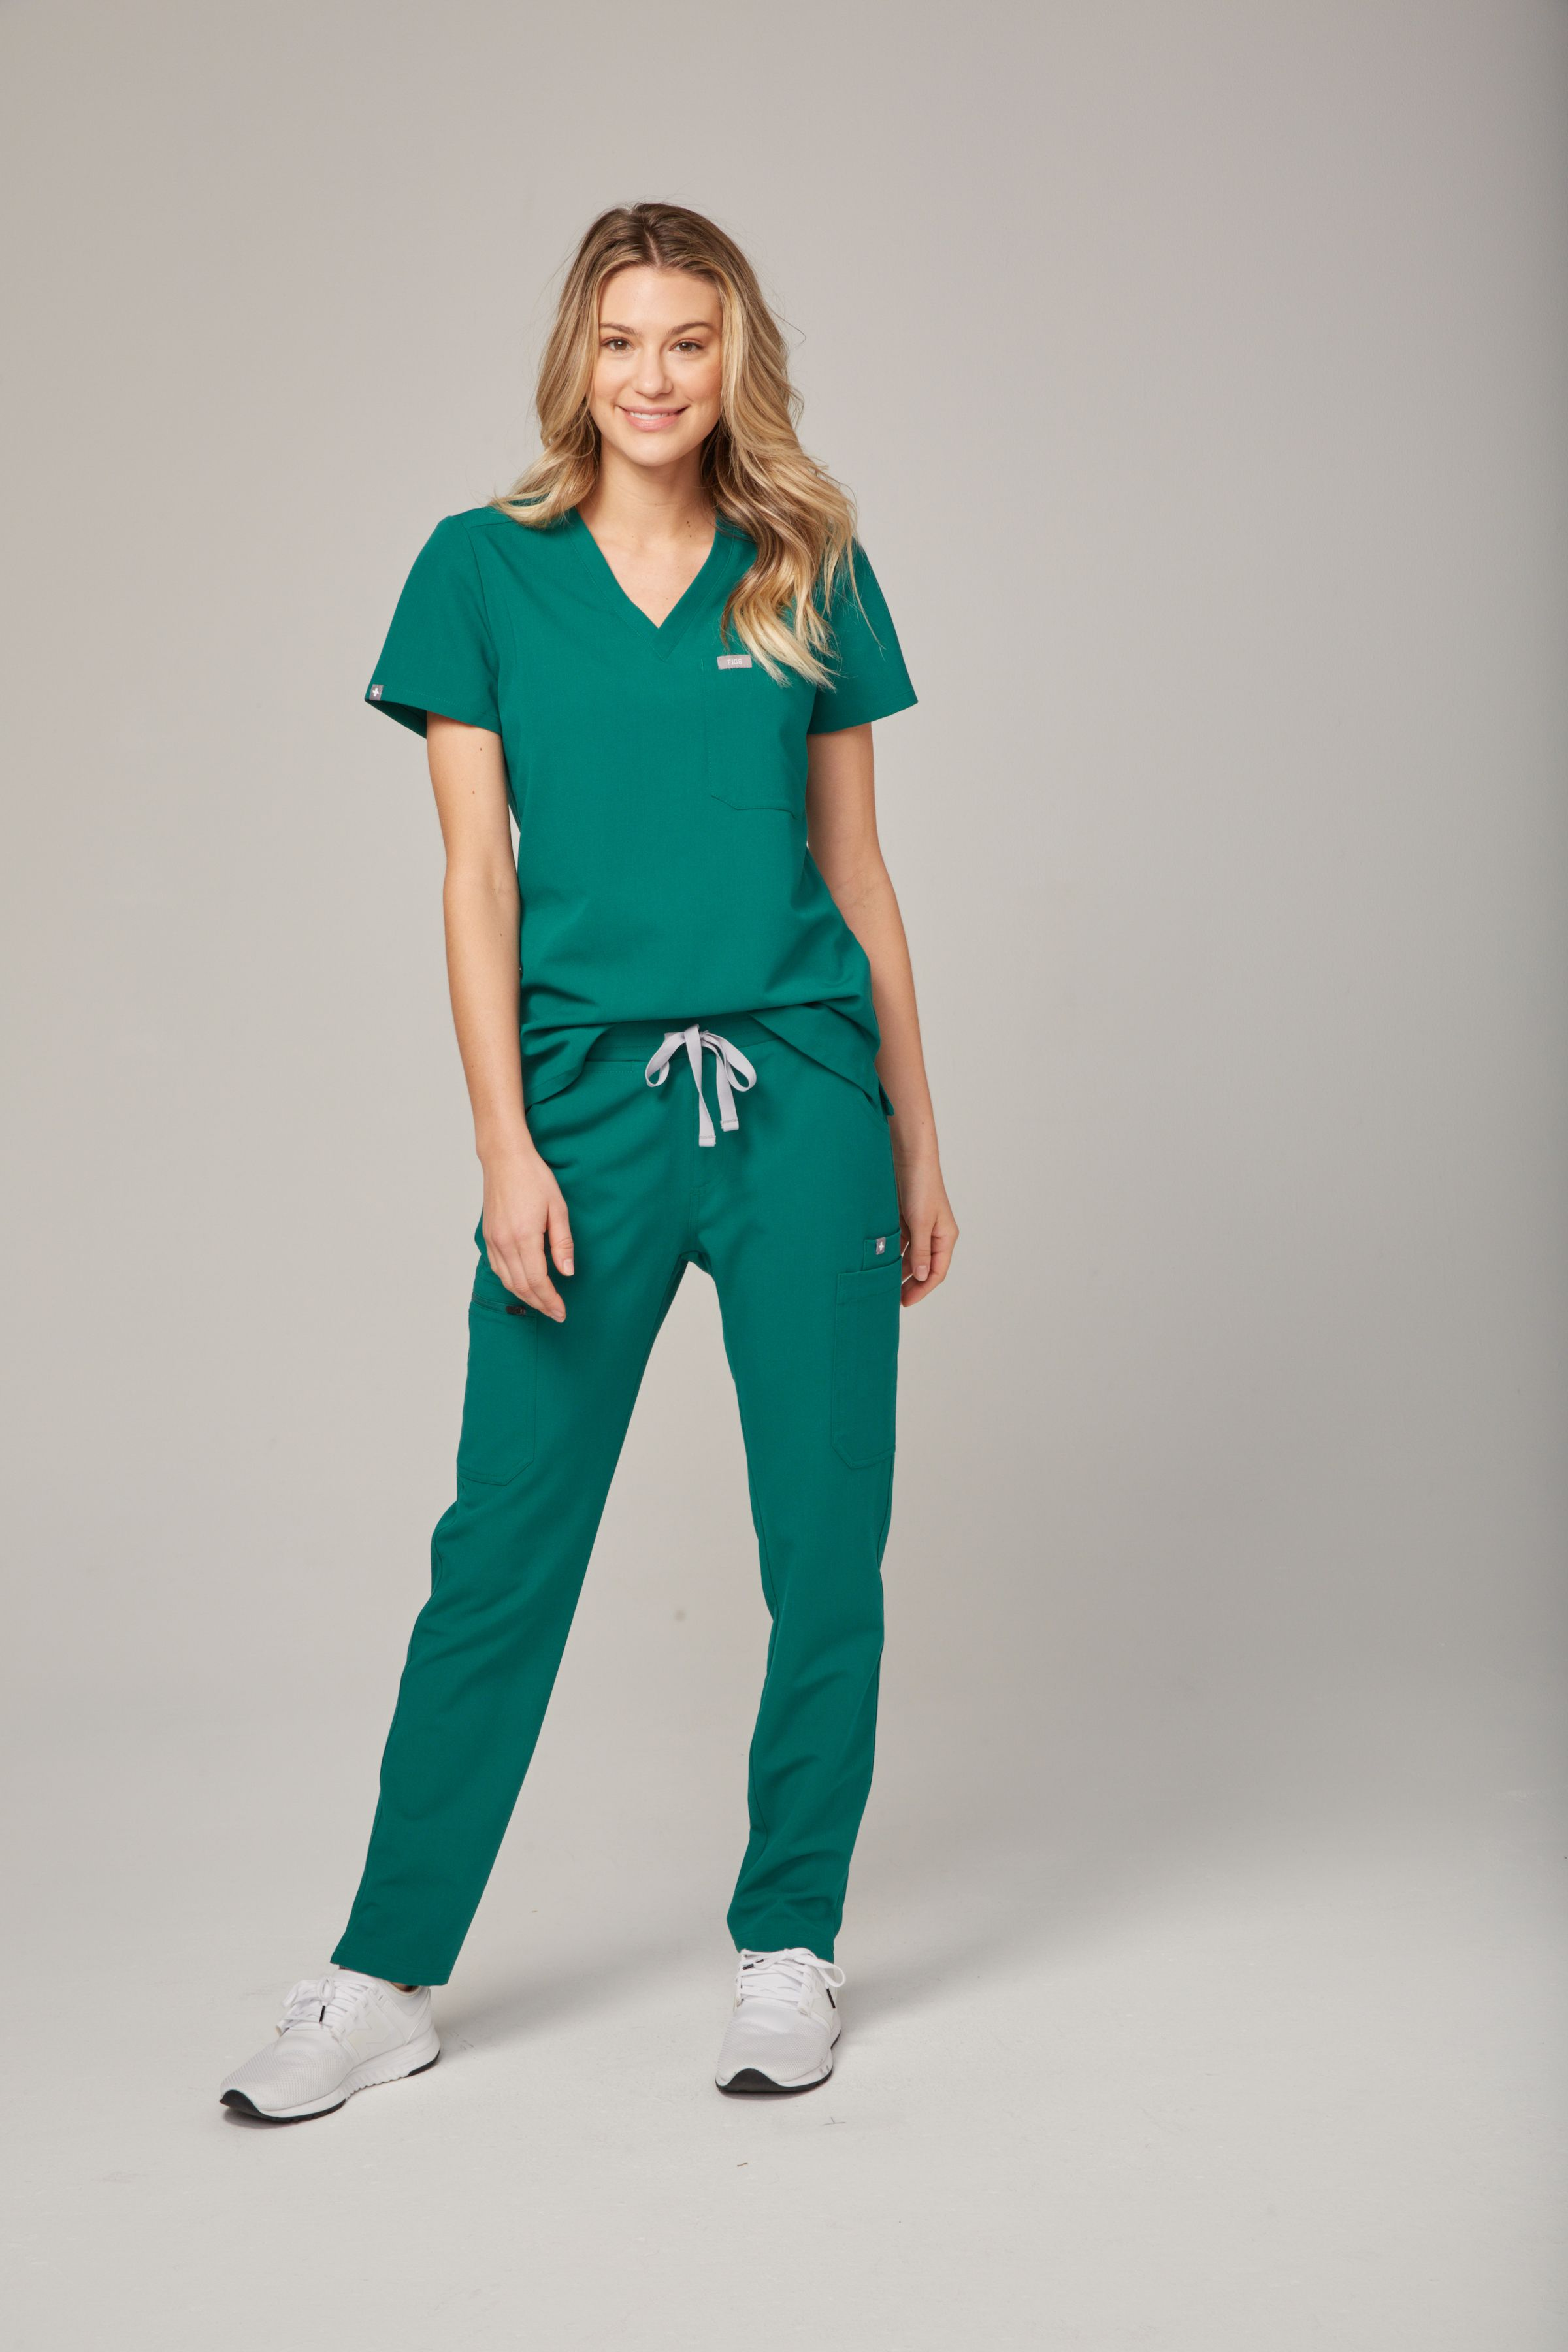 e5705538aba Women's Yola Skinny Scrub pant - Hunter Green Polish your professional look  with our most stylin